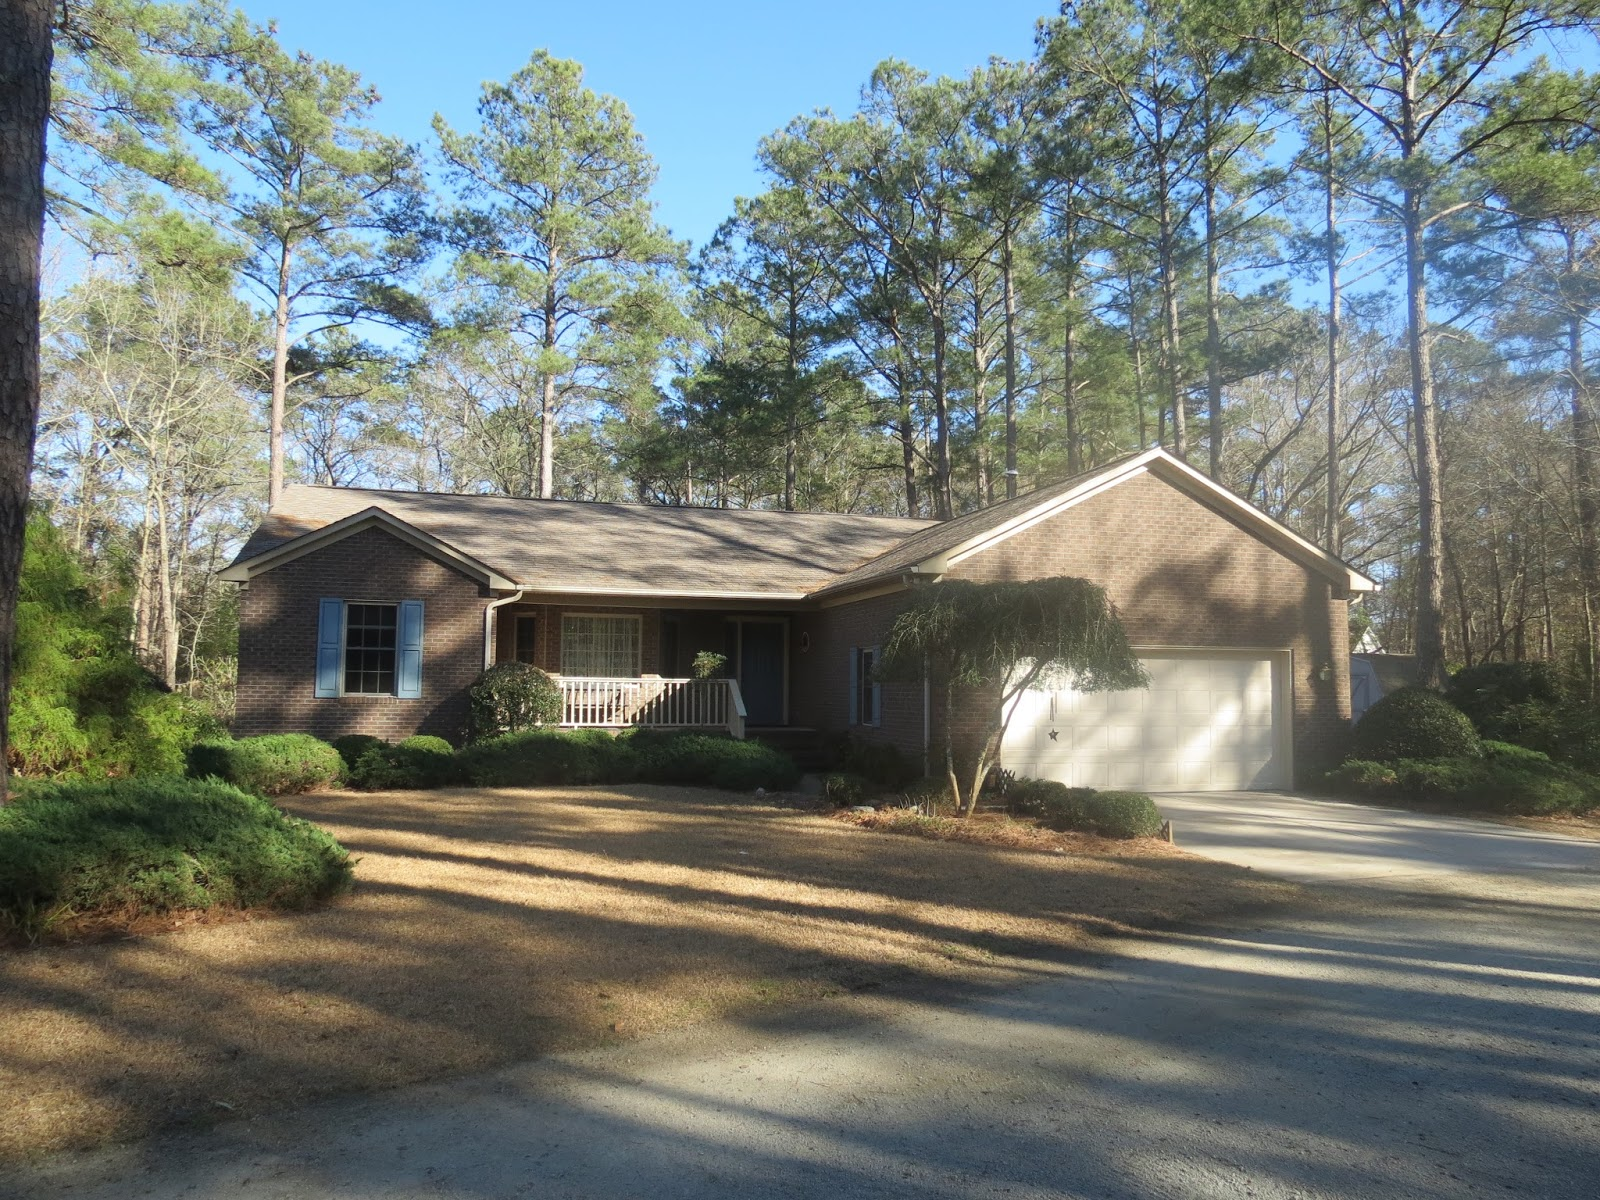 New bern nc real estate by sonja babic just listed custom for Custom homes new bern nc